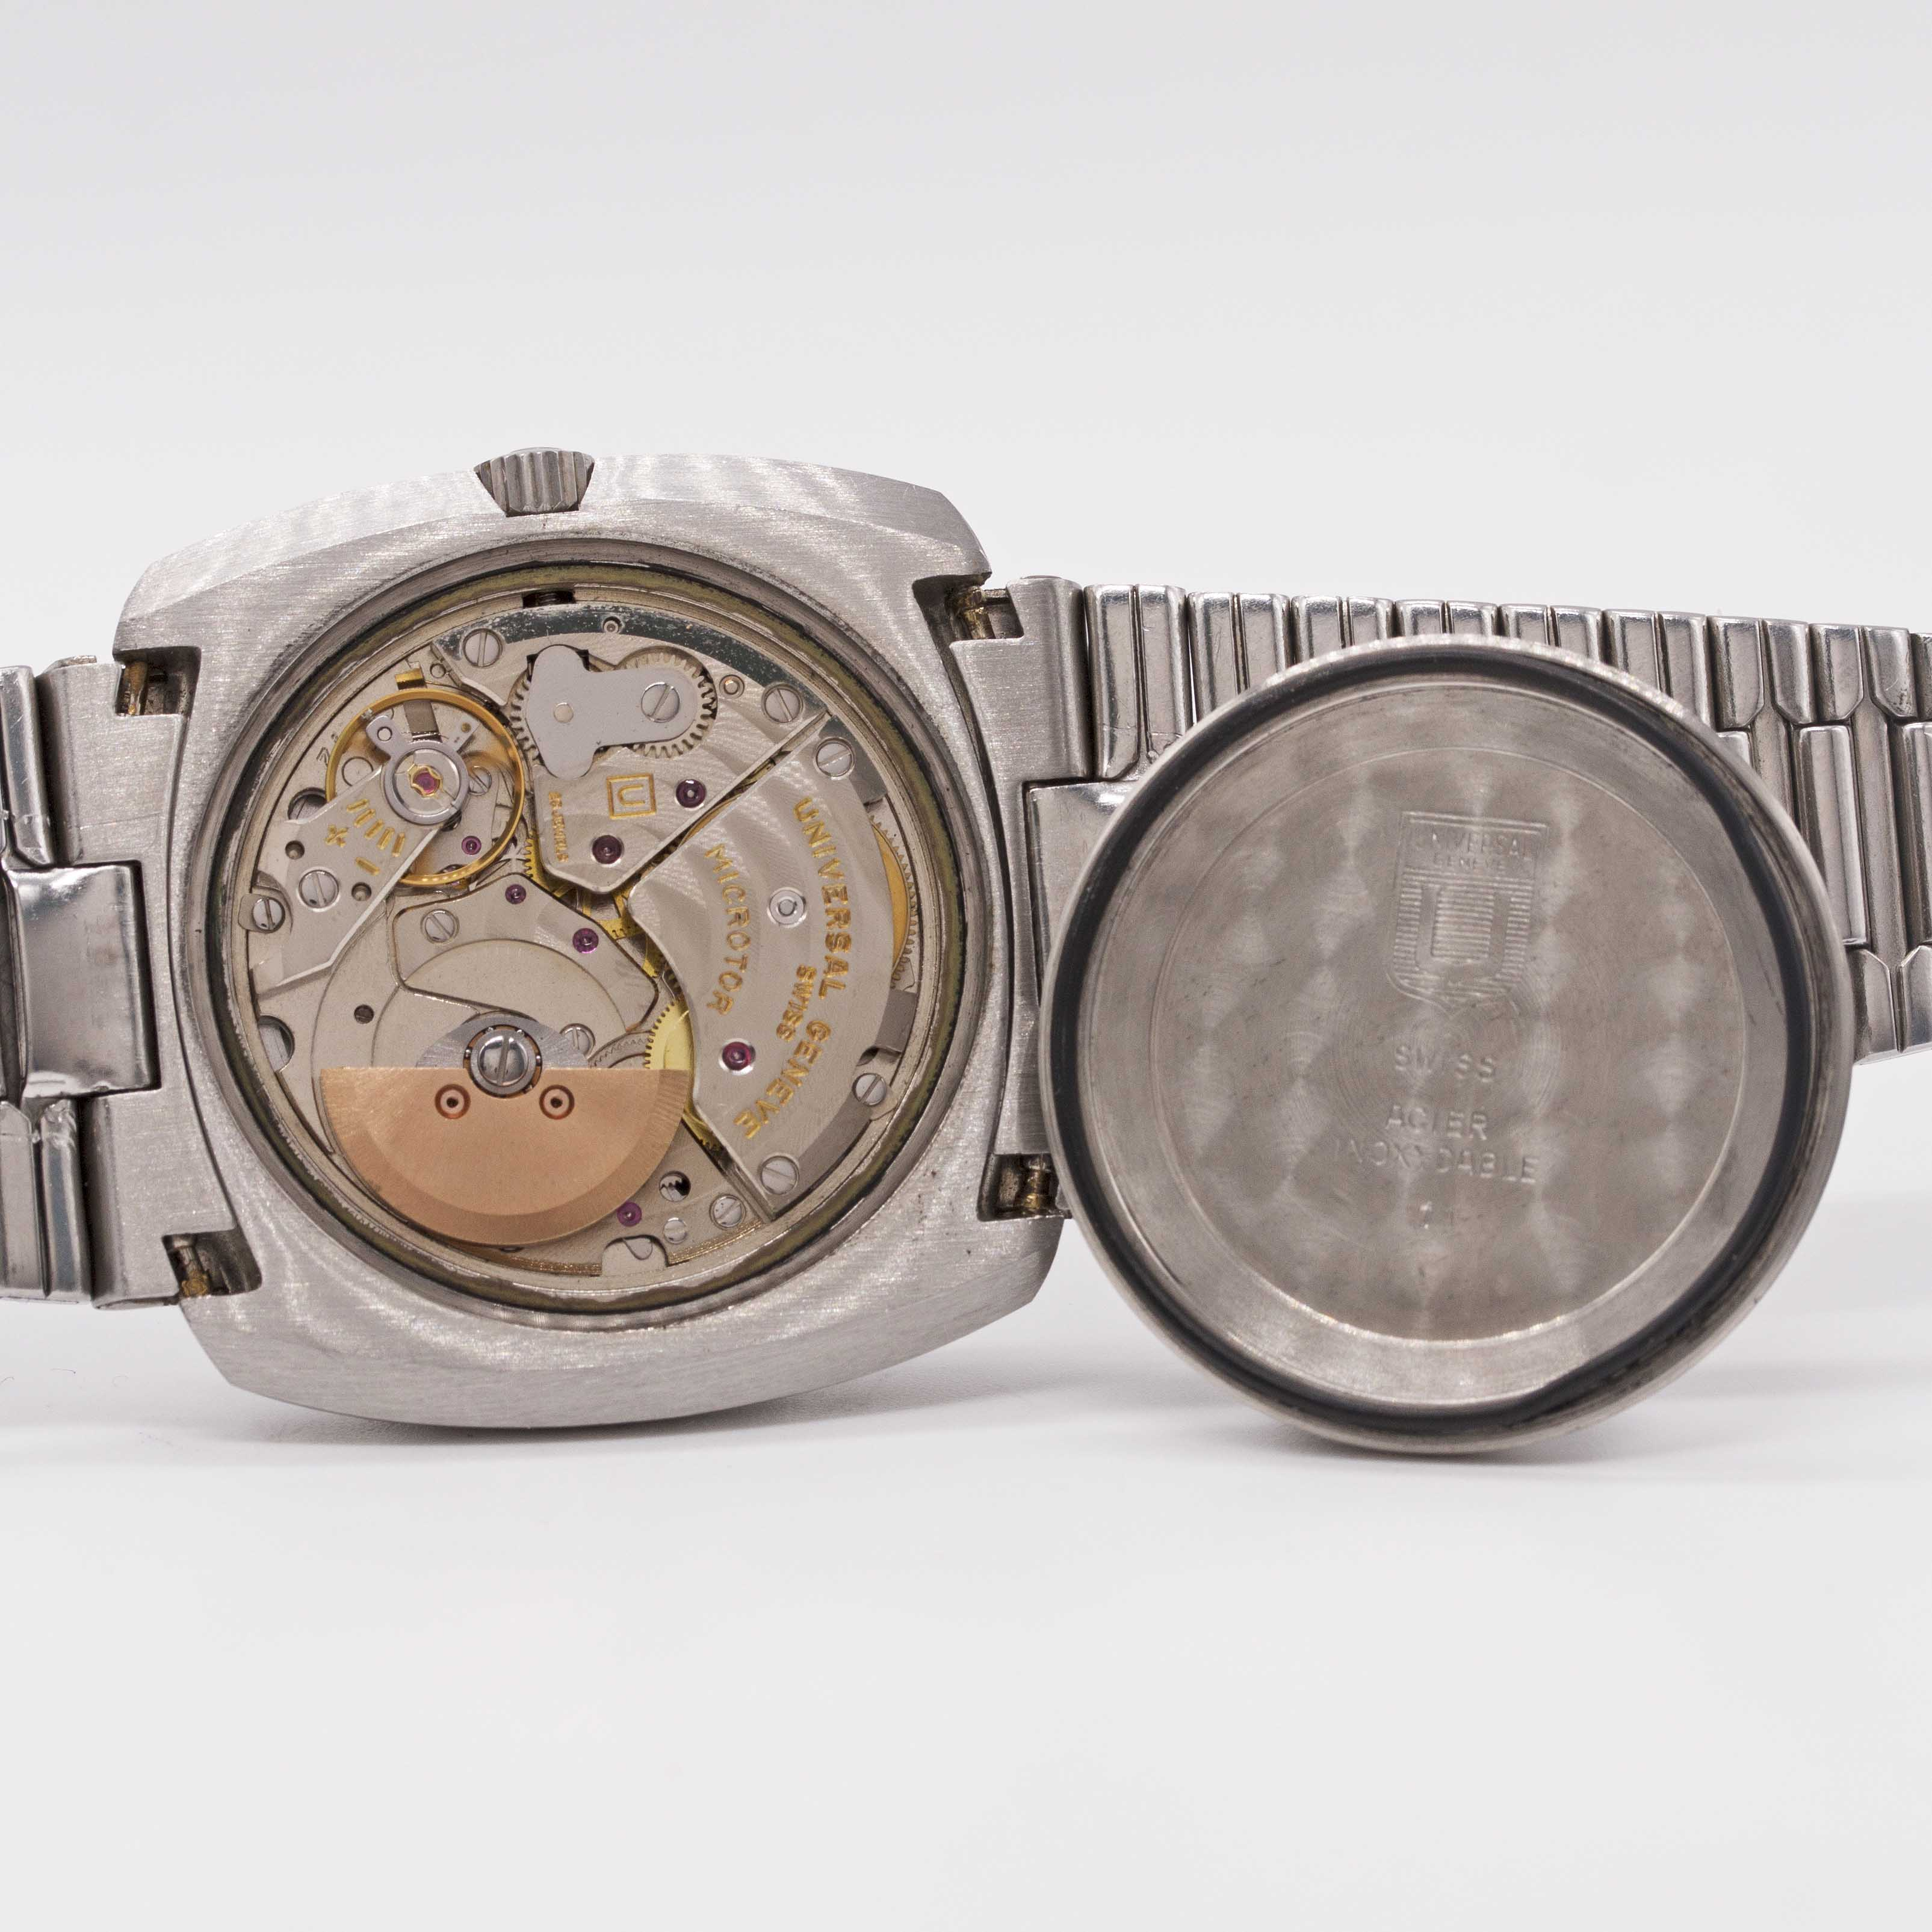 Lot 6 - A GENTLEMAN'S STAINLESS STEEL UNIVERSAL GENEVE POLEROUTER AUTOMATIC BRACELET WATCH CIRCA 1979,